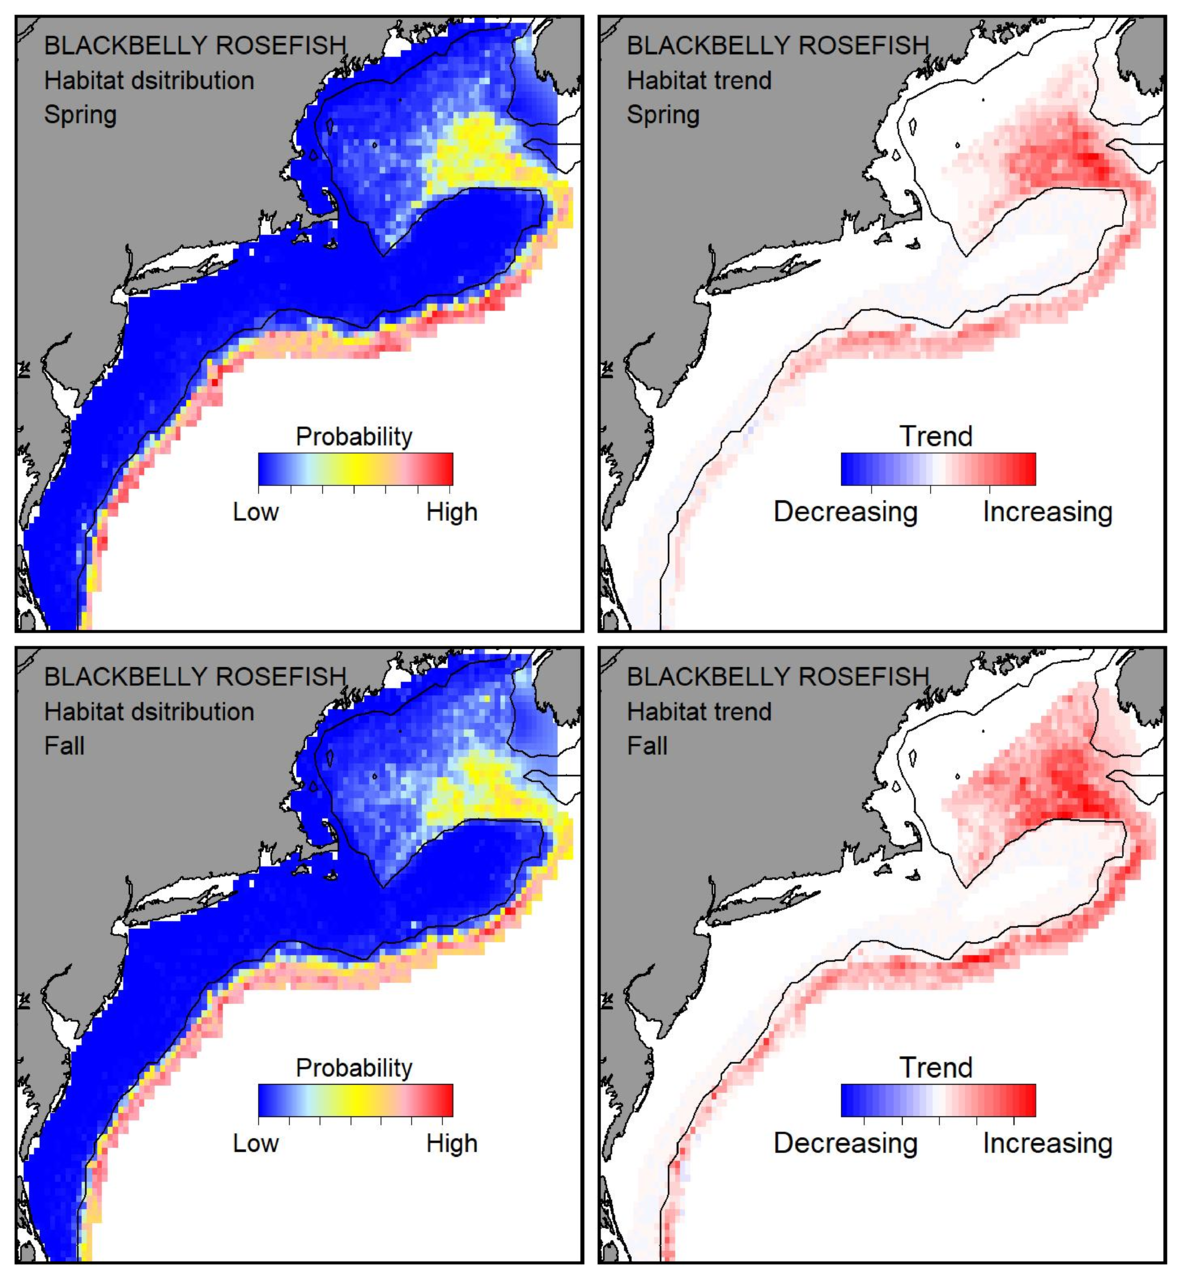 Probable habitat distribution for blackbelly rosefish showing the highest concentration and increasing trend in the Gulf of Maine during the spring. Bottom row: Probable habitat distribution for blackbelly rosefish showing the highest concentration and increasing trend in the Gulf of Maine during the fall.